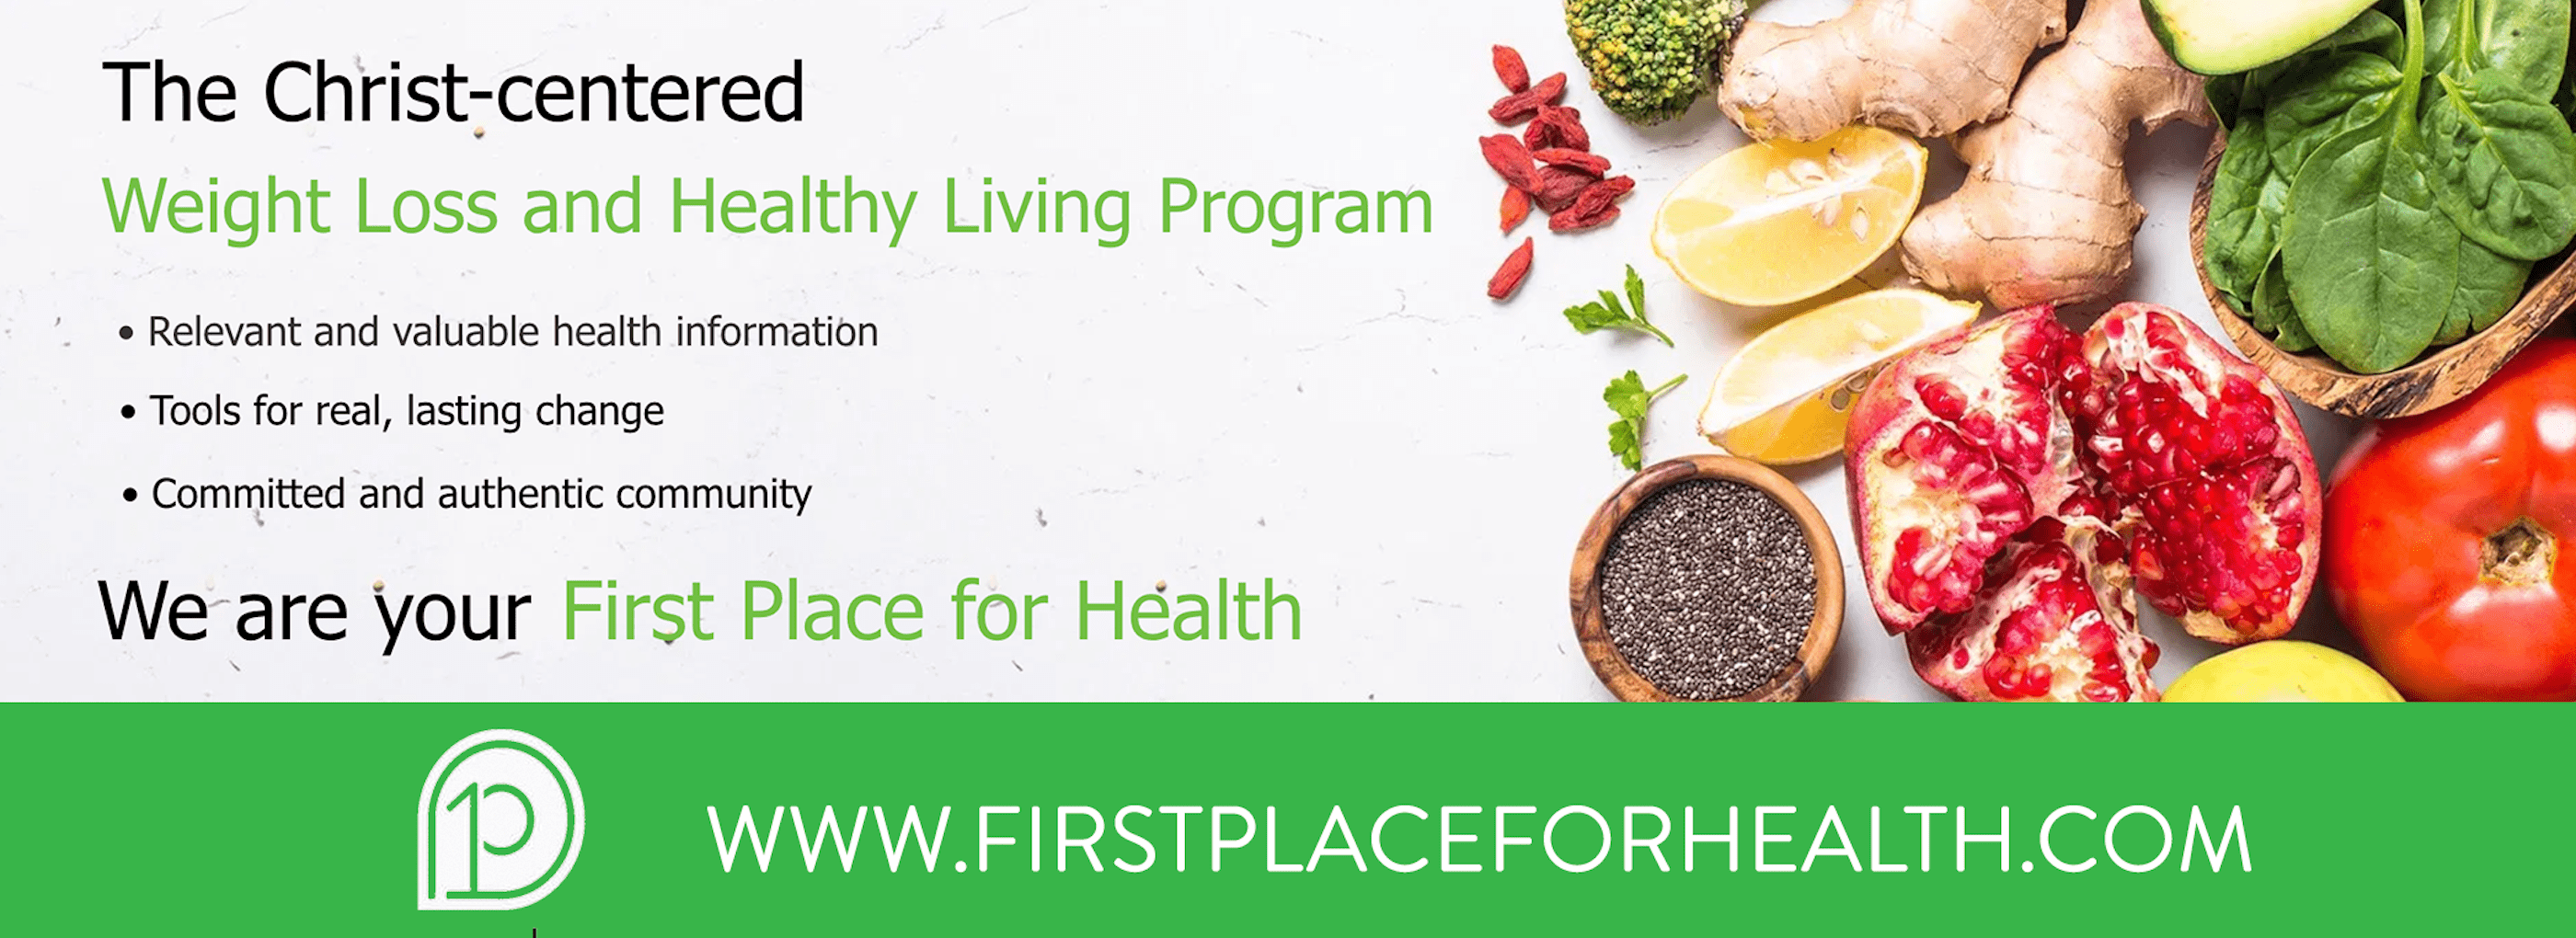 First Place for Health Ad-min